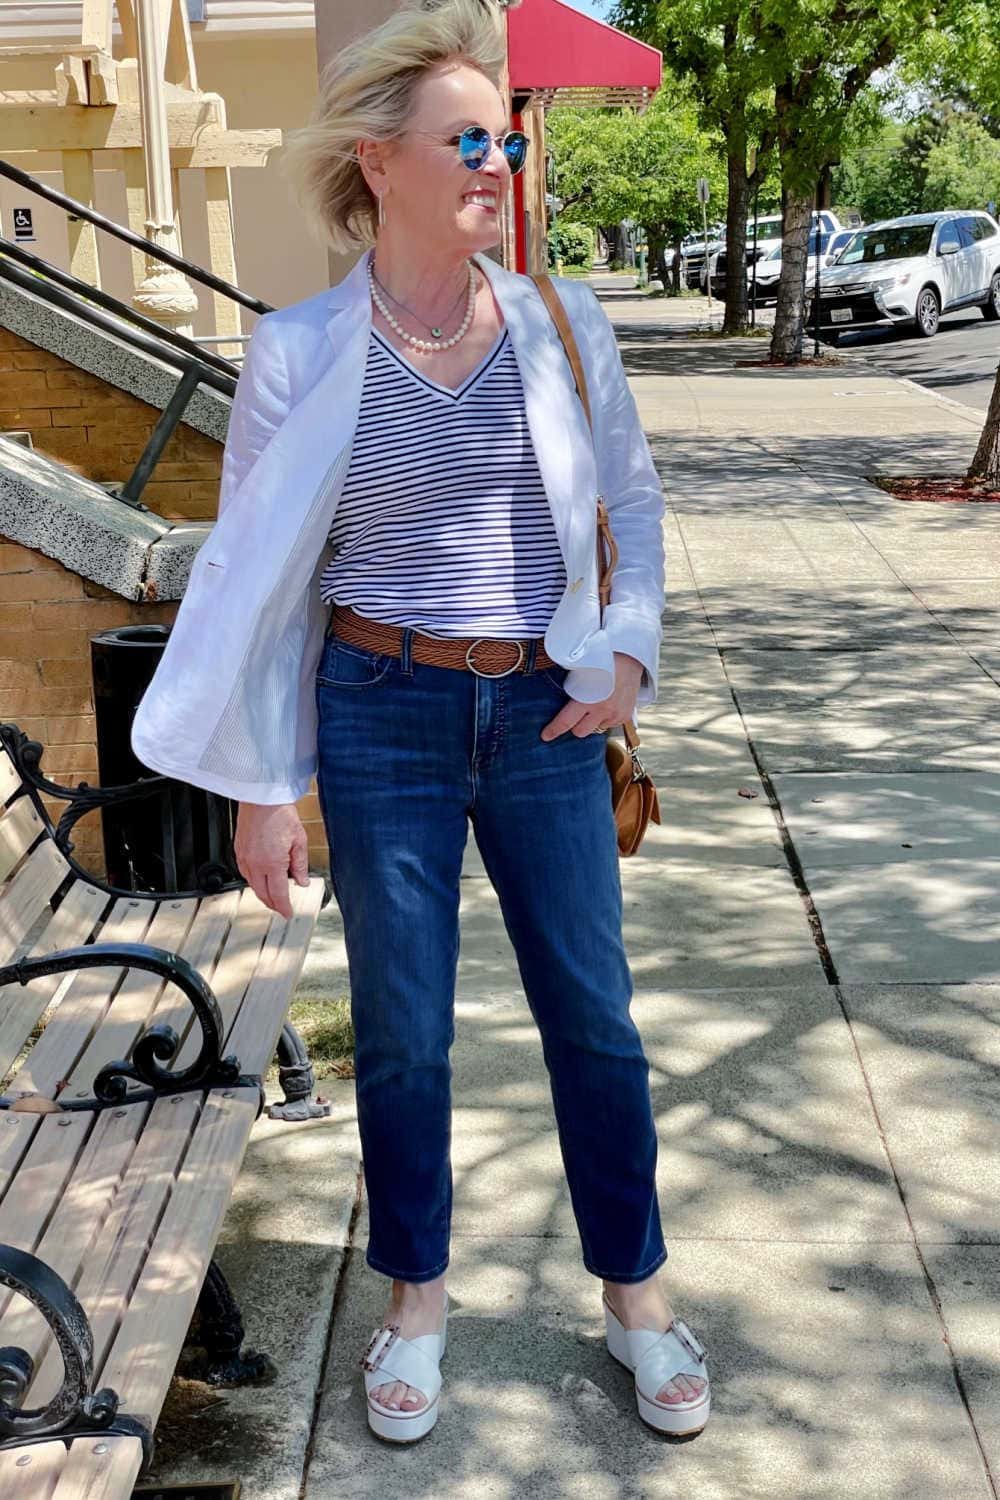 woman walking down street in striped tee, blue jeans and white jacket